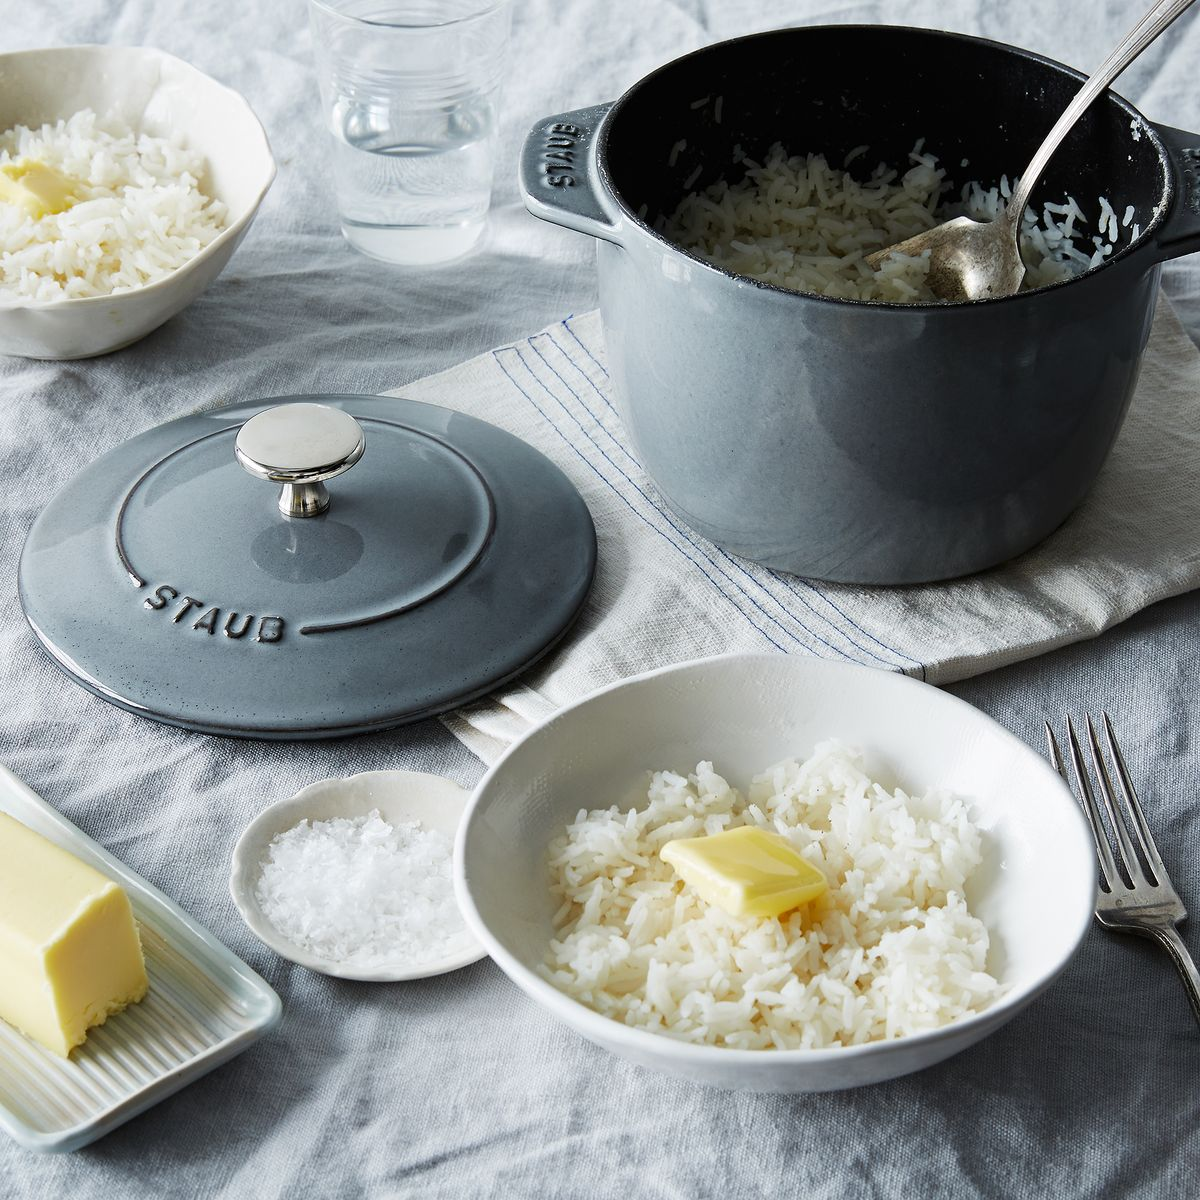 A Pot Designed To Make Perfectly Cooked Rice That Actually Does